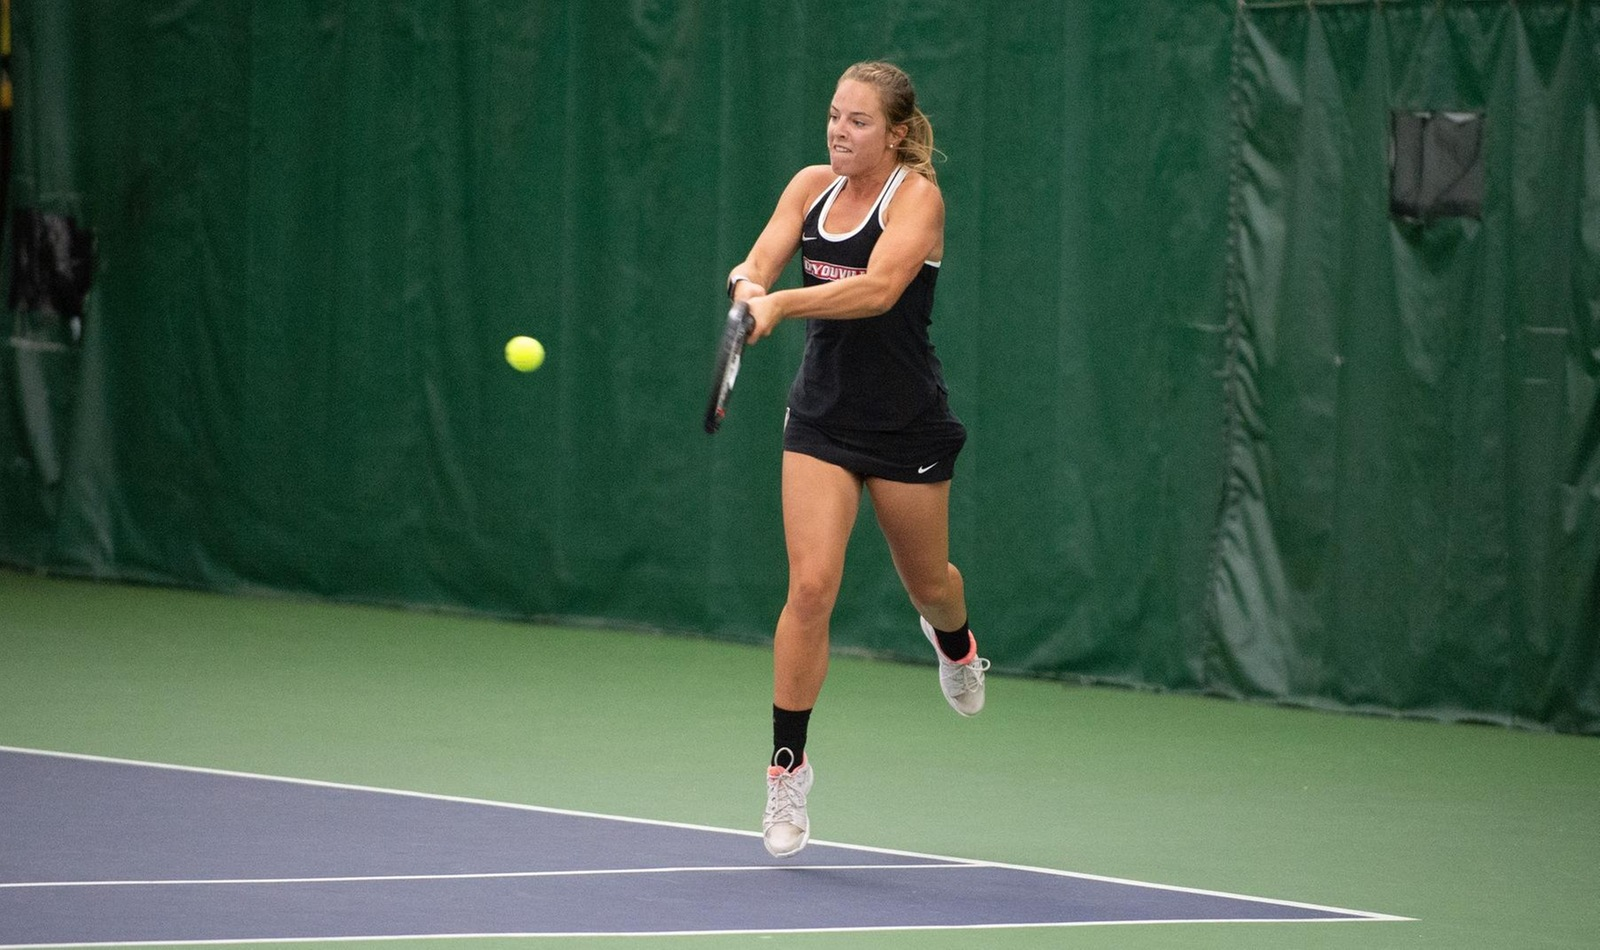 Freshmen Make Team Debuts for Women's Tennis in Fredonia Loss